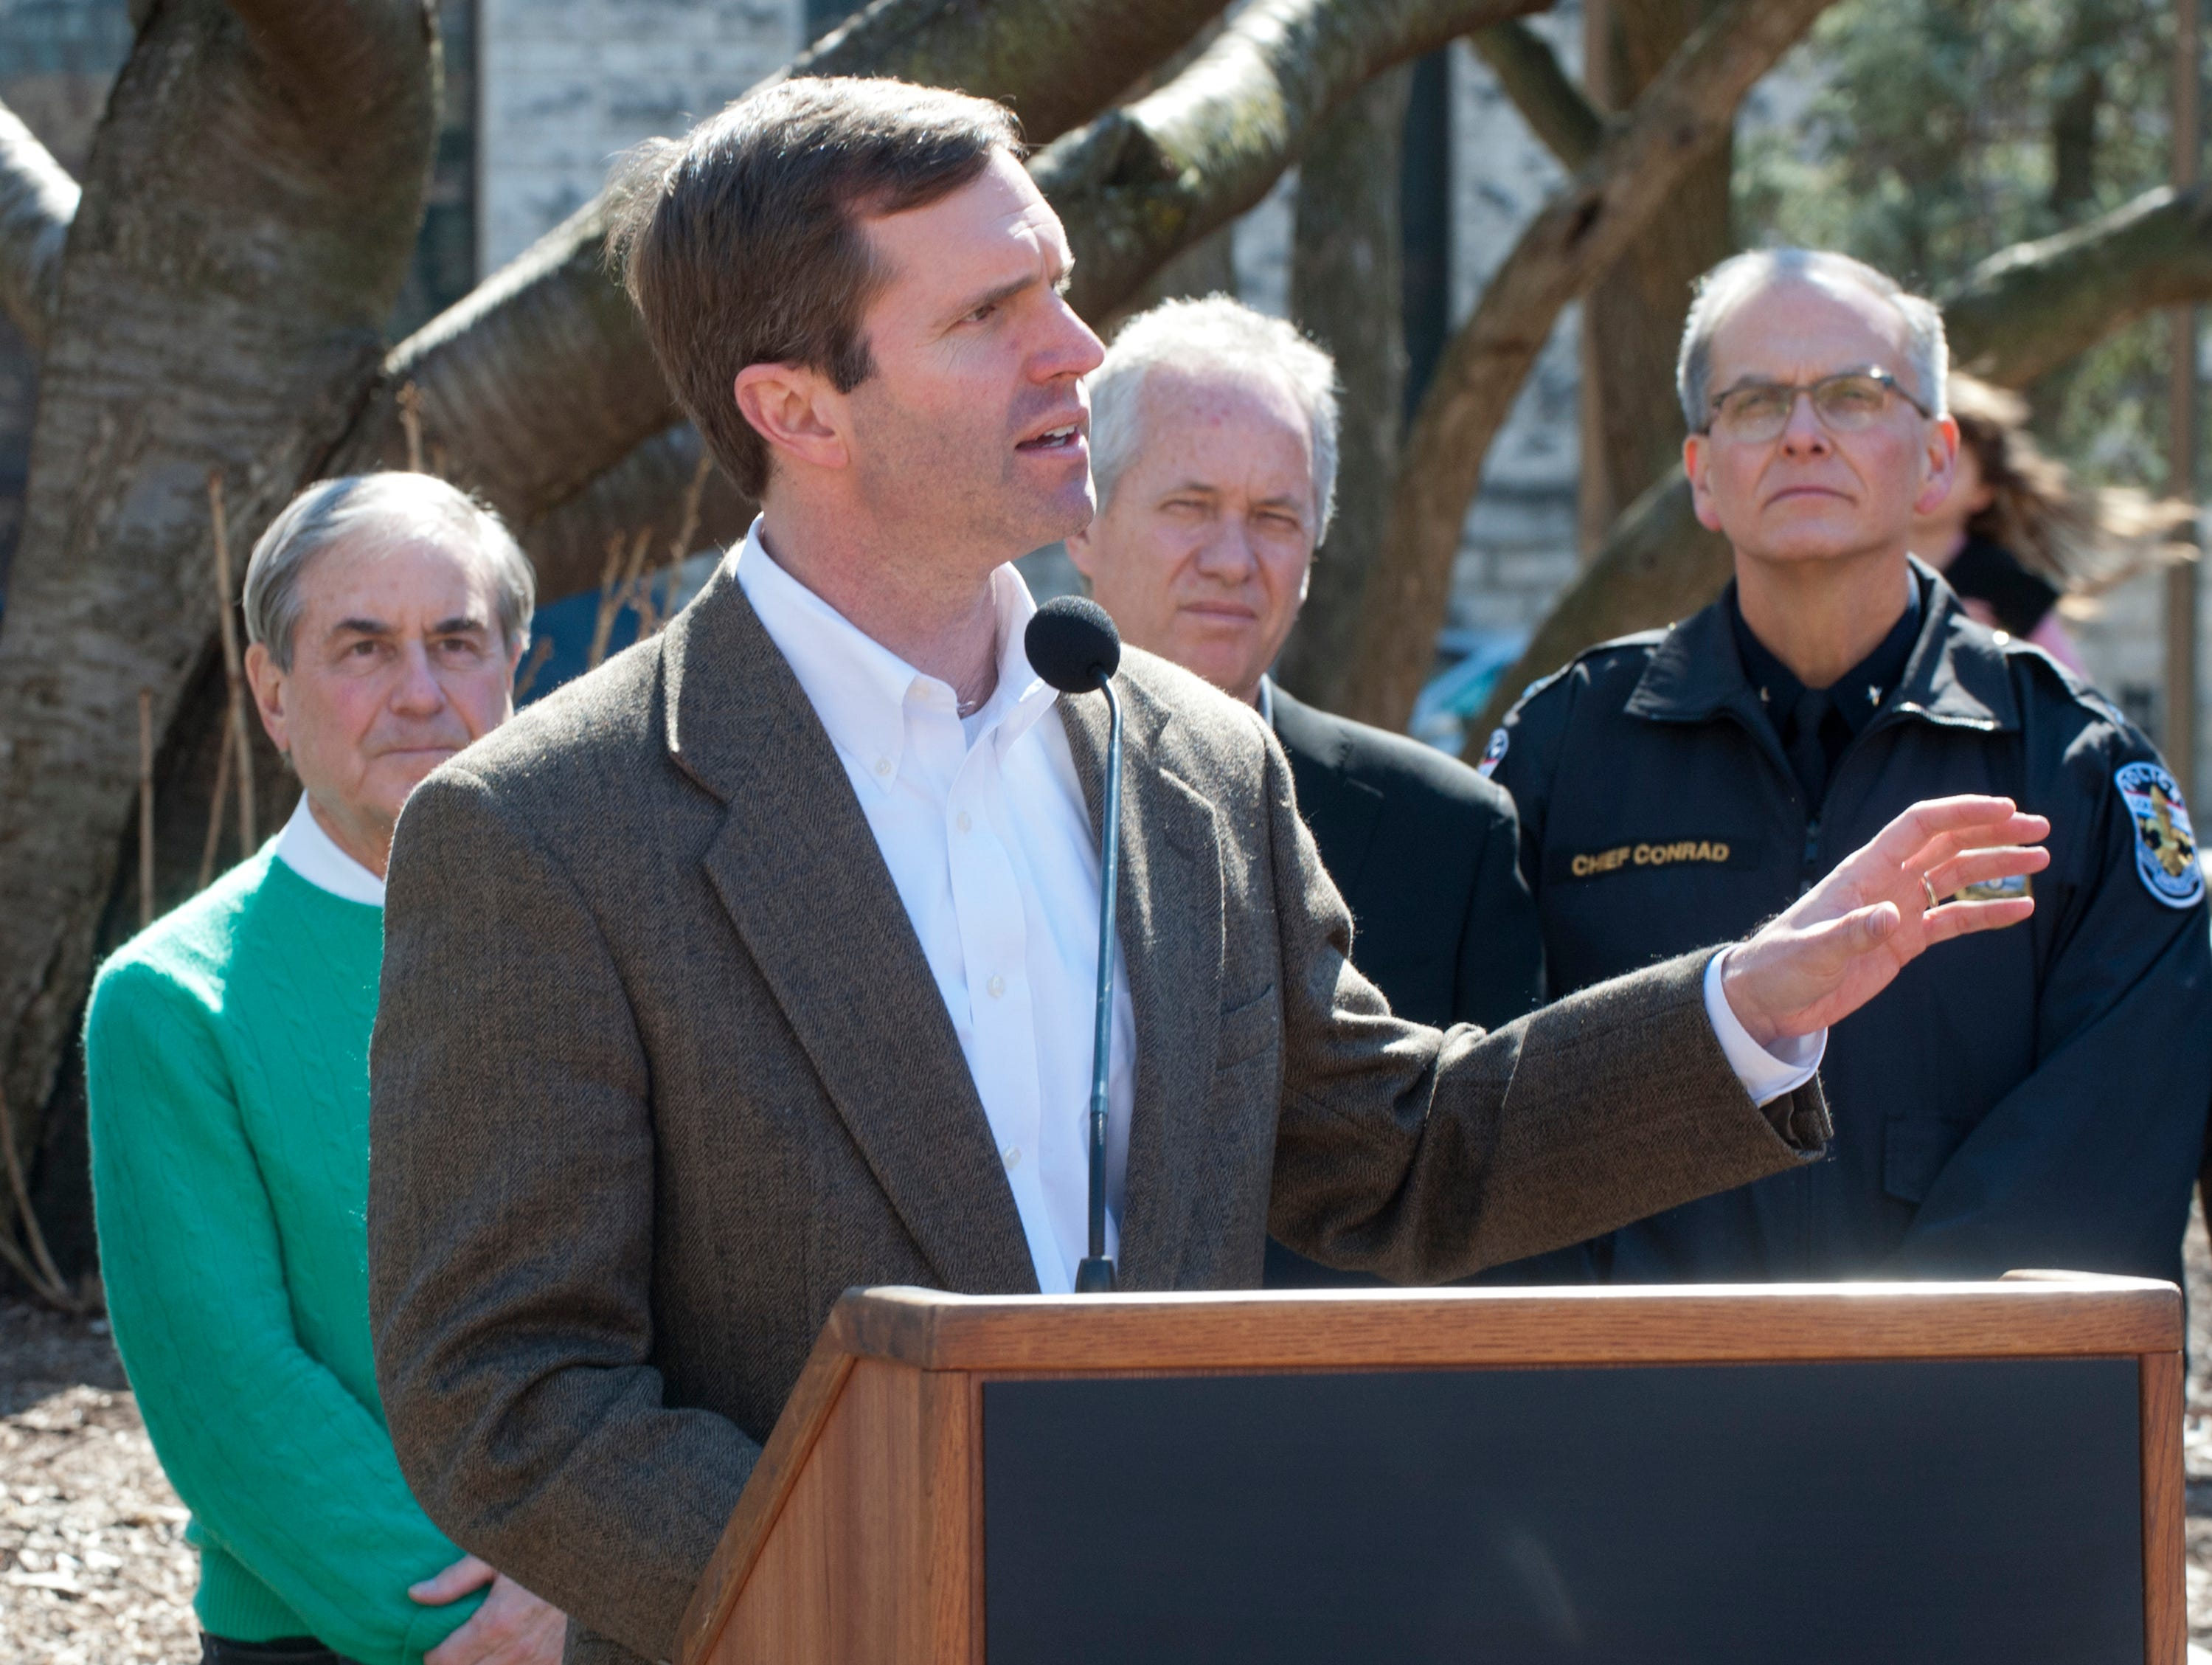 Kentucky State Attorney General Andy Beshear speaks at the vigil. Behind him, (l-r), are U.S. Representative John Yarmuth (D-Louisville,) Louisville Metro Mayor Greg Fischer and Louisville Metro Police Chief Steve Conrad. 16 March 2019